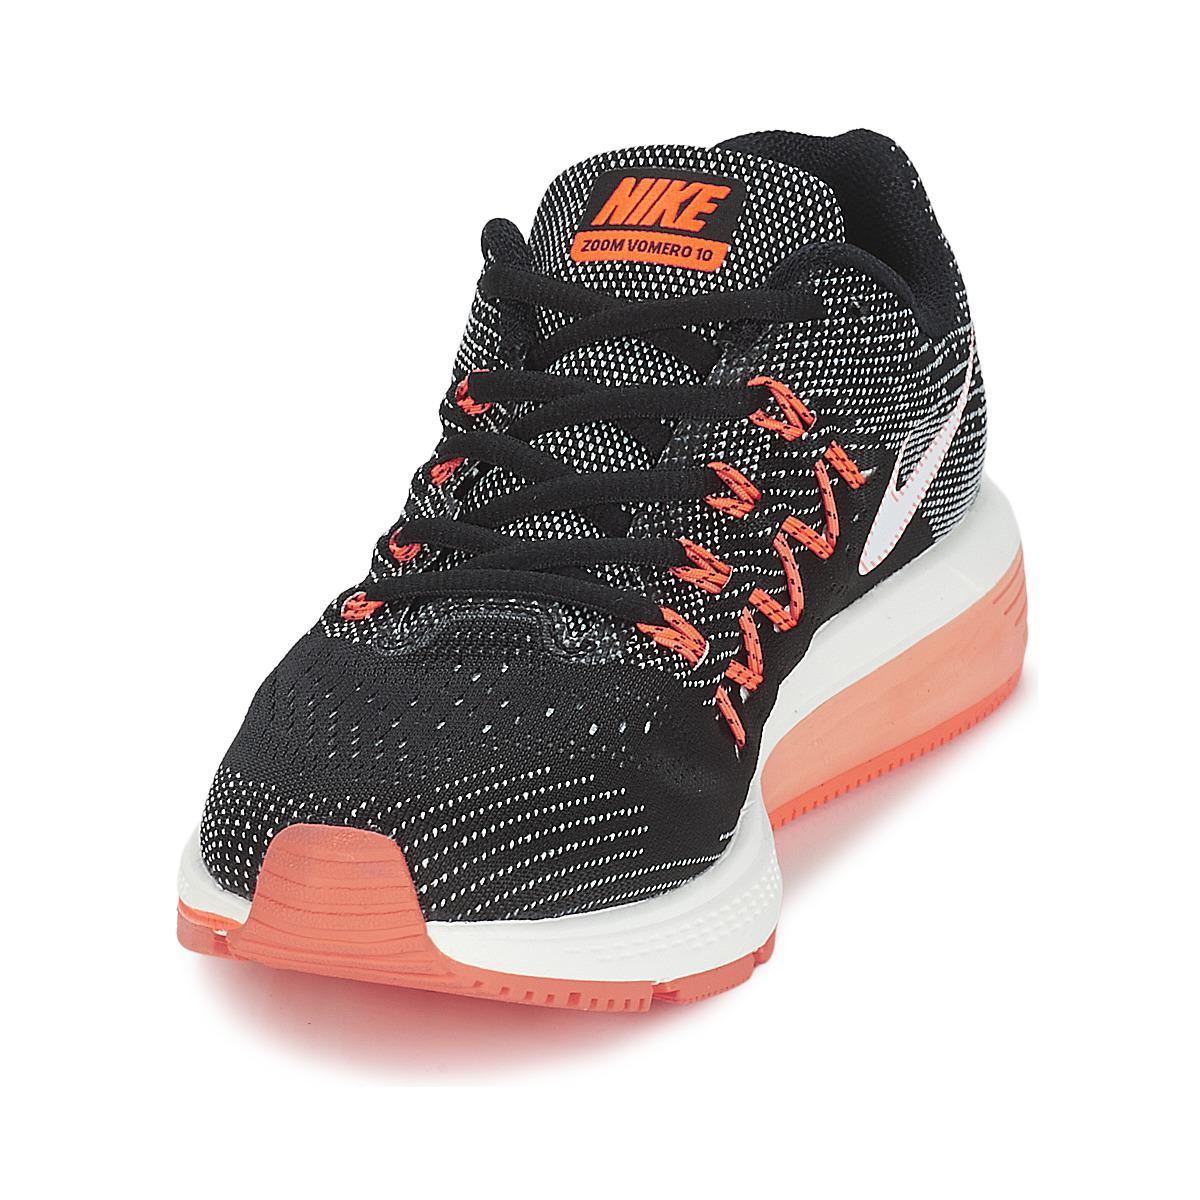 best service 35380 228eb Nike Air Zoom Vomero 10 W Running Trainers in Black - Lyst